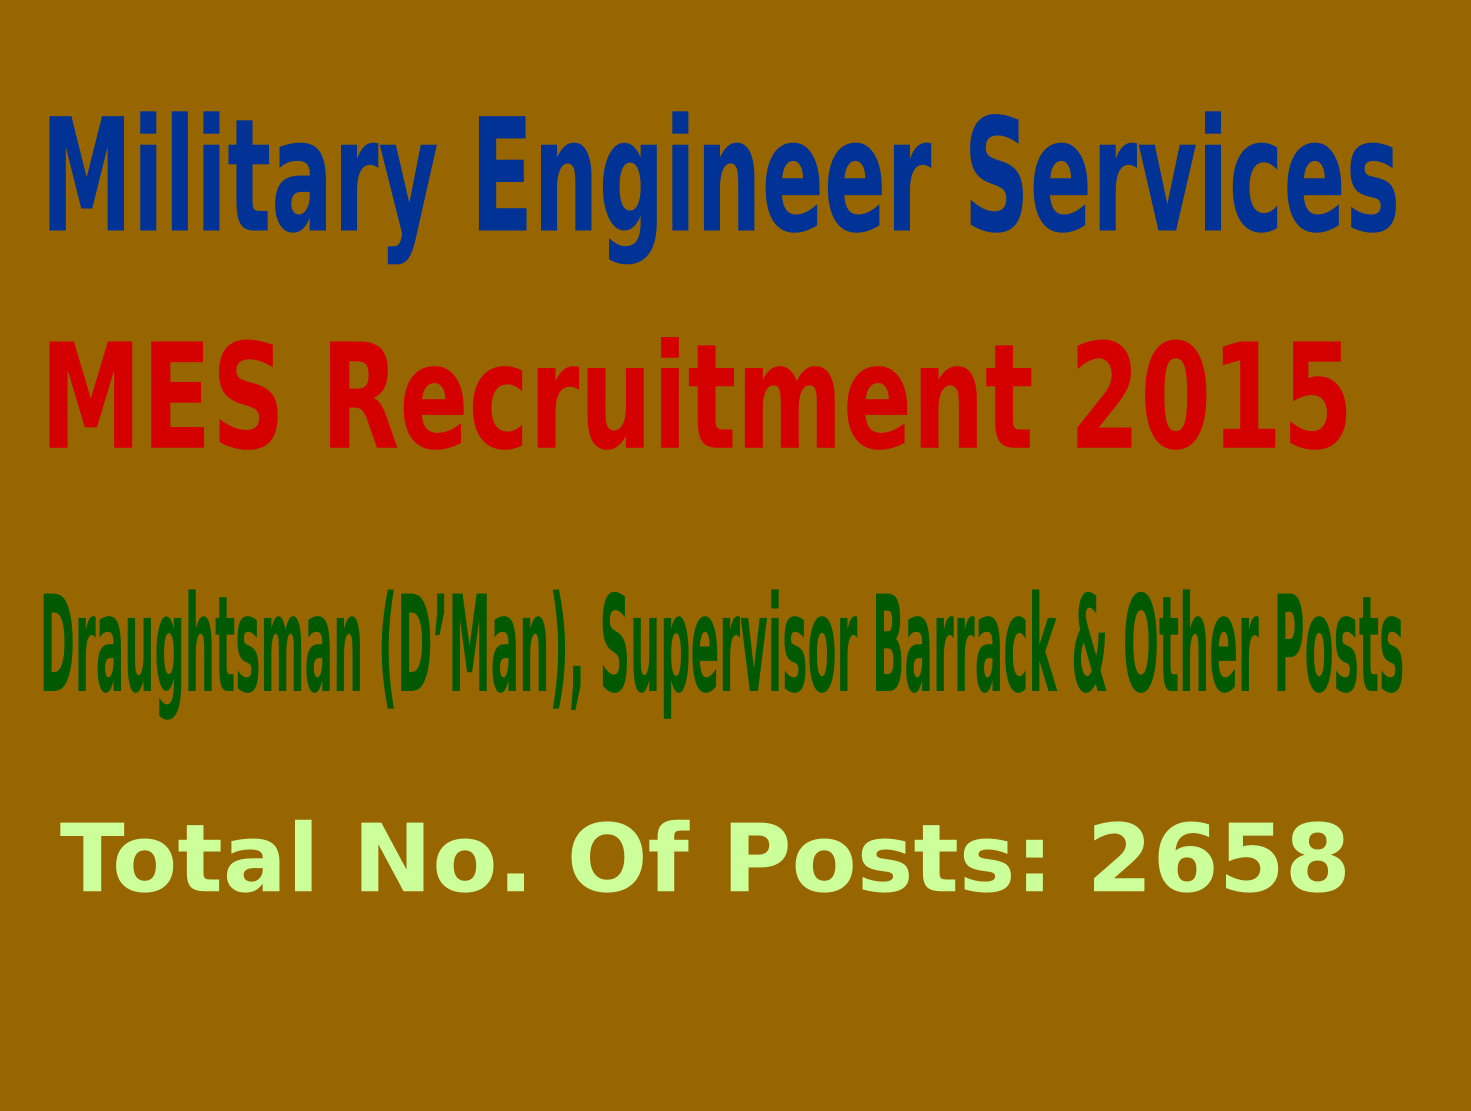 Military Engineer Services (MES) Recruitment 2015 For 2658 Draughtsman (D'Man), Supervisor Barrack & Other Posts